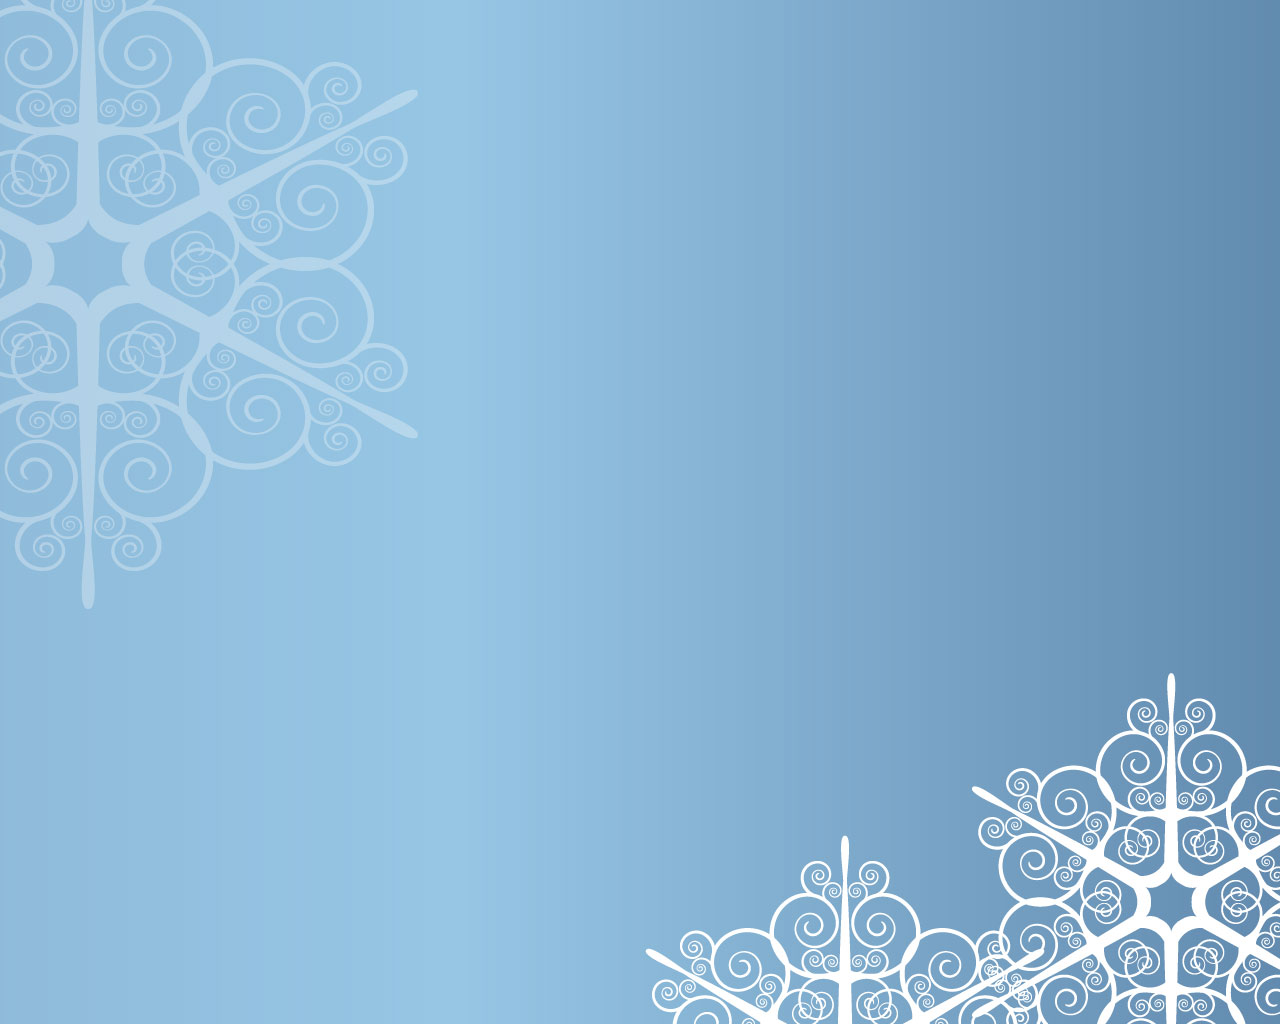 Wallpaper clipart free png royalty free stock Free christmas wallpaper clipart - ClipartFest png royalty free stock